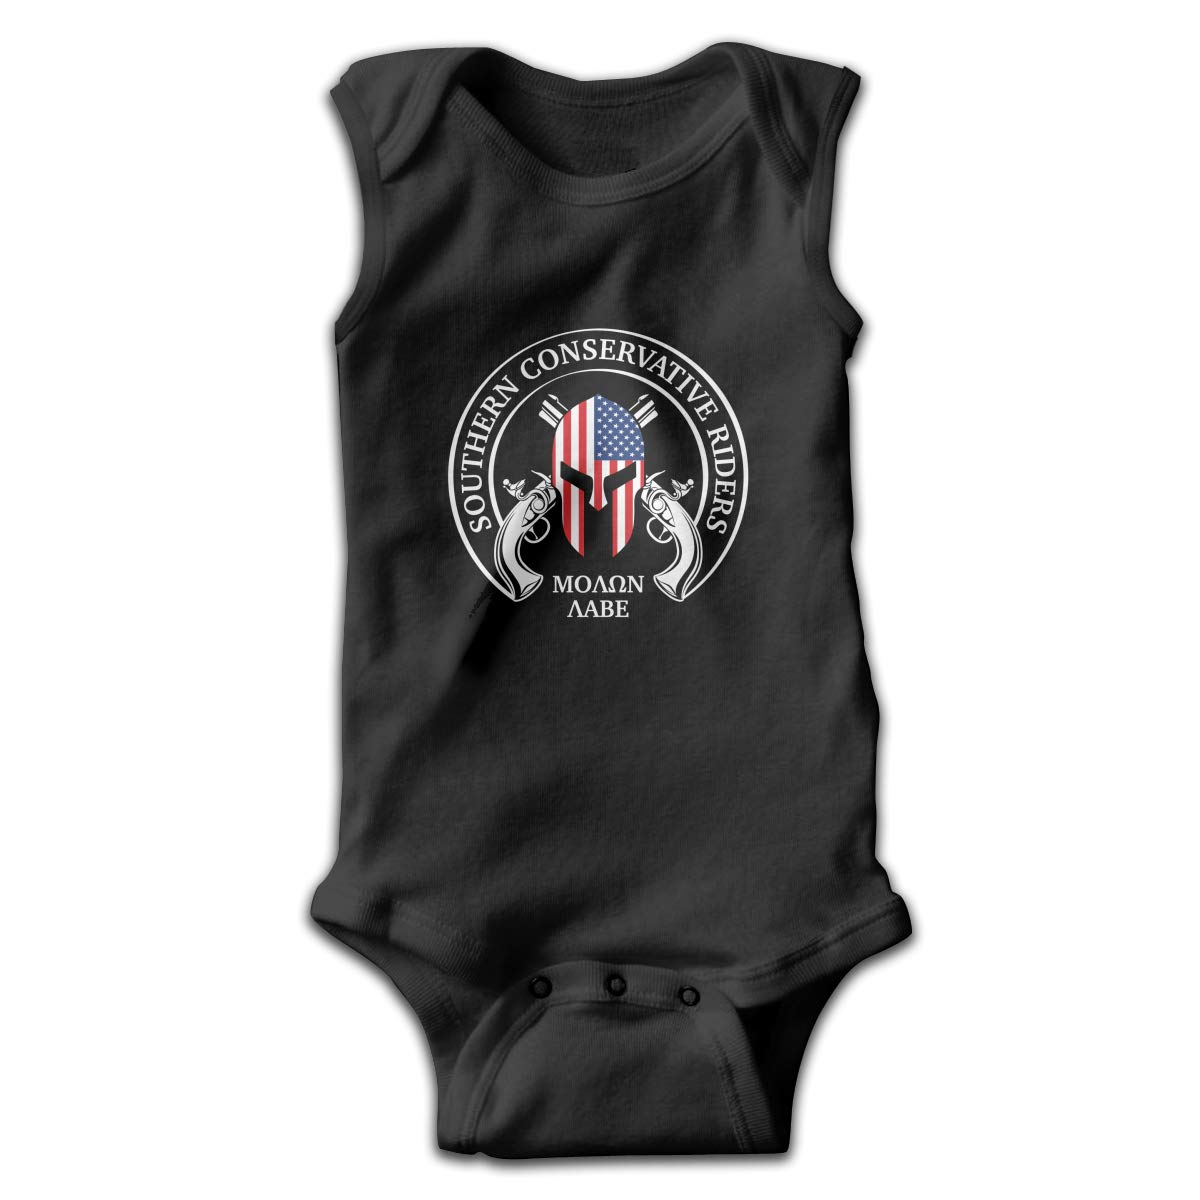 Dunpaiaa Come and Take Them Molon Labe Smalls Baby Onesie,Infant Bodysuit Black